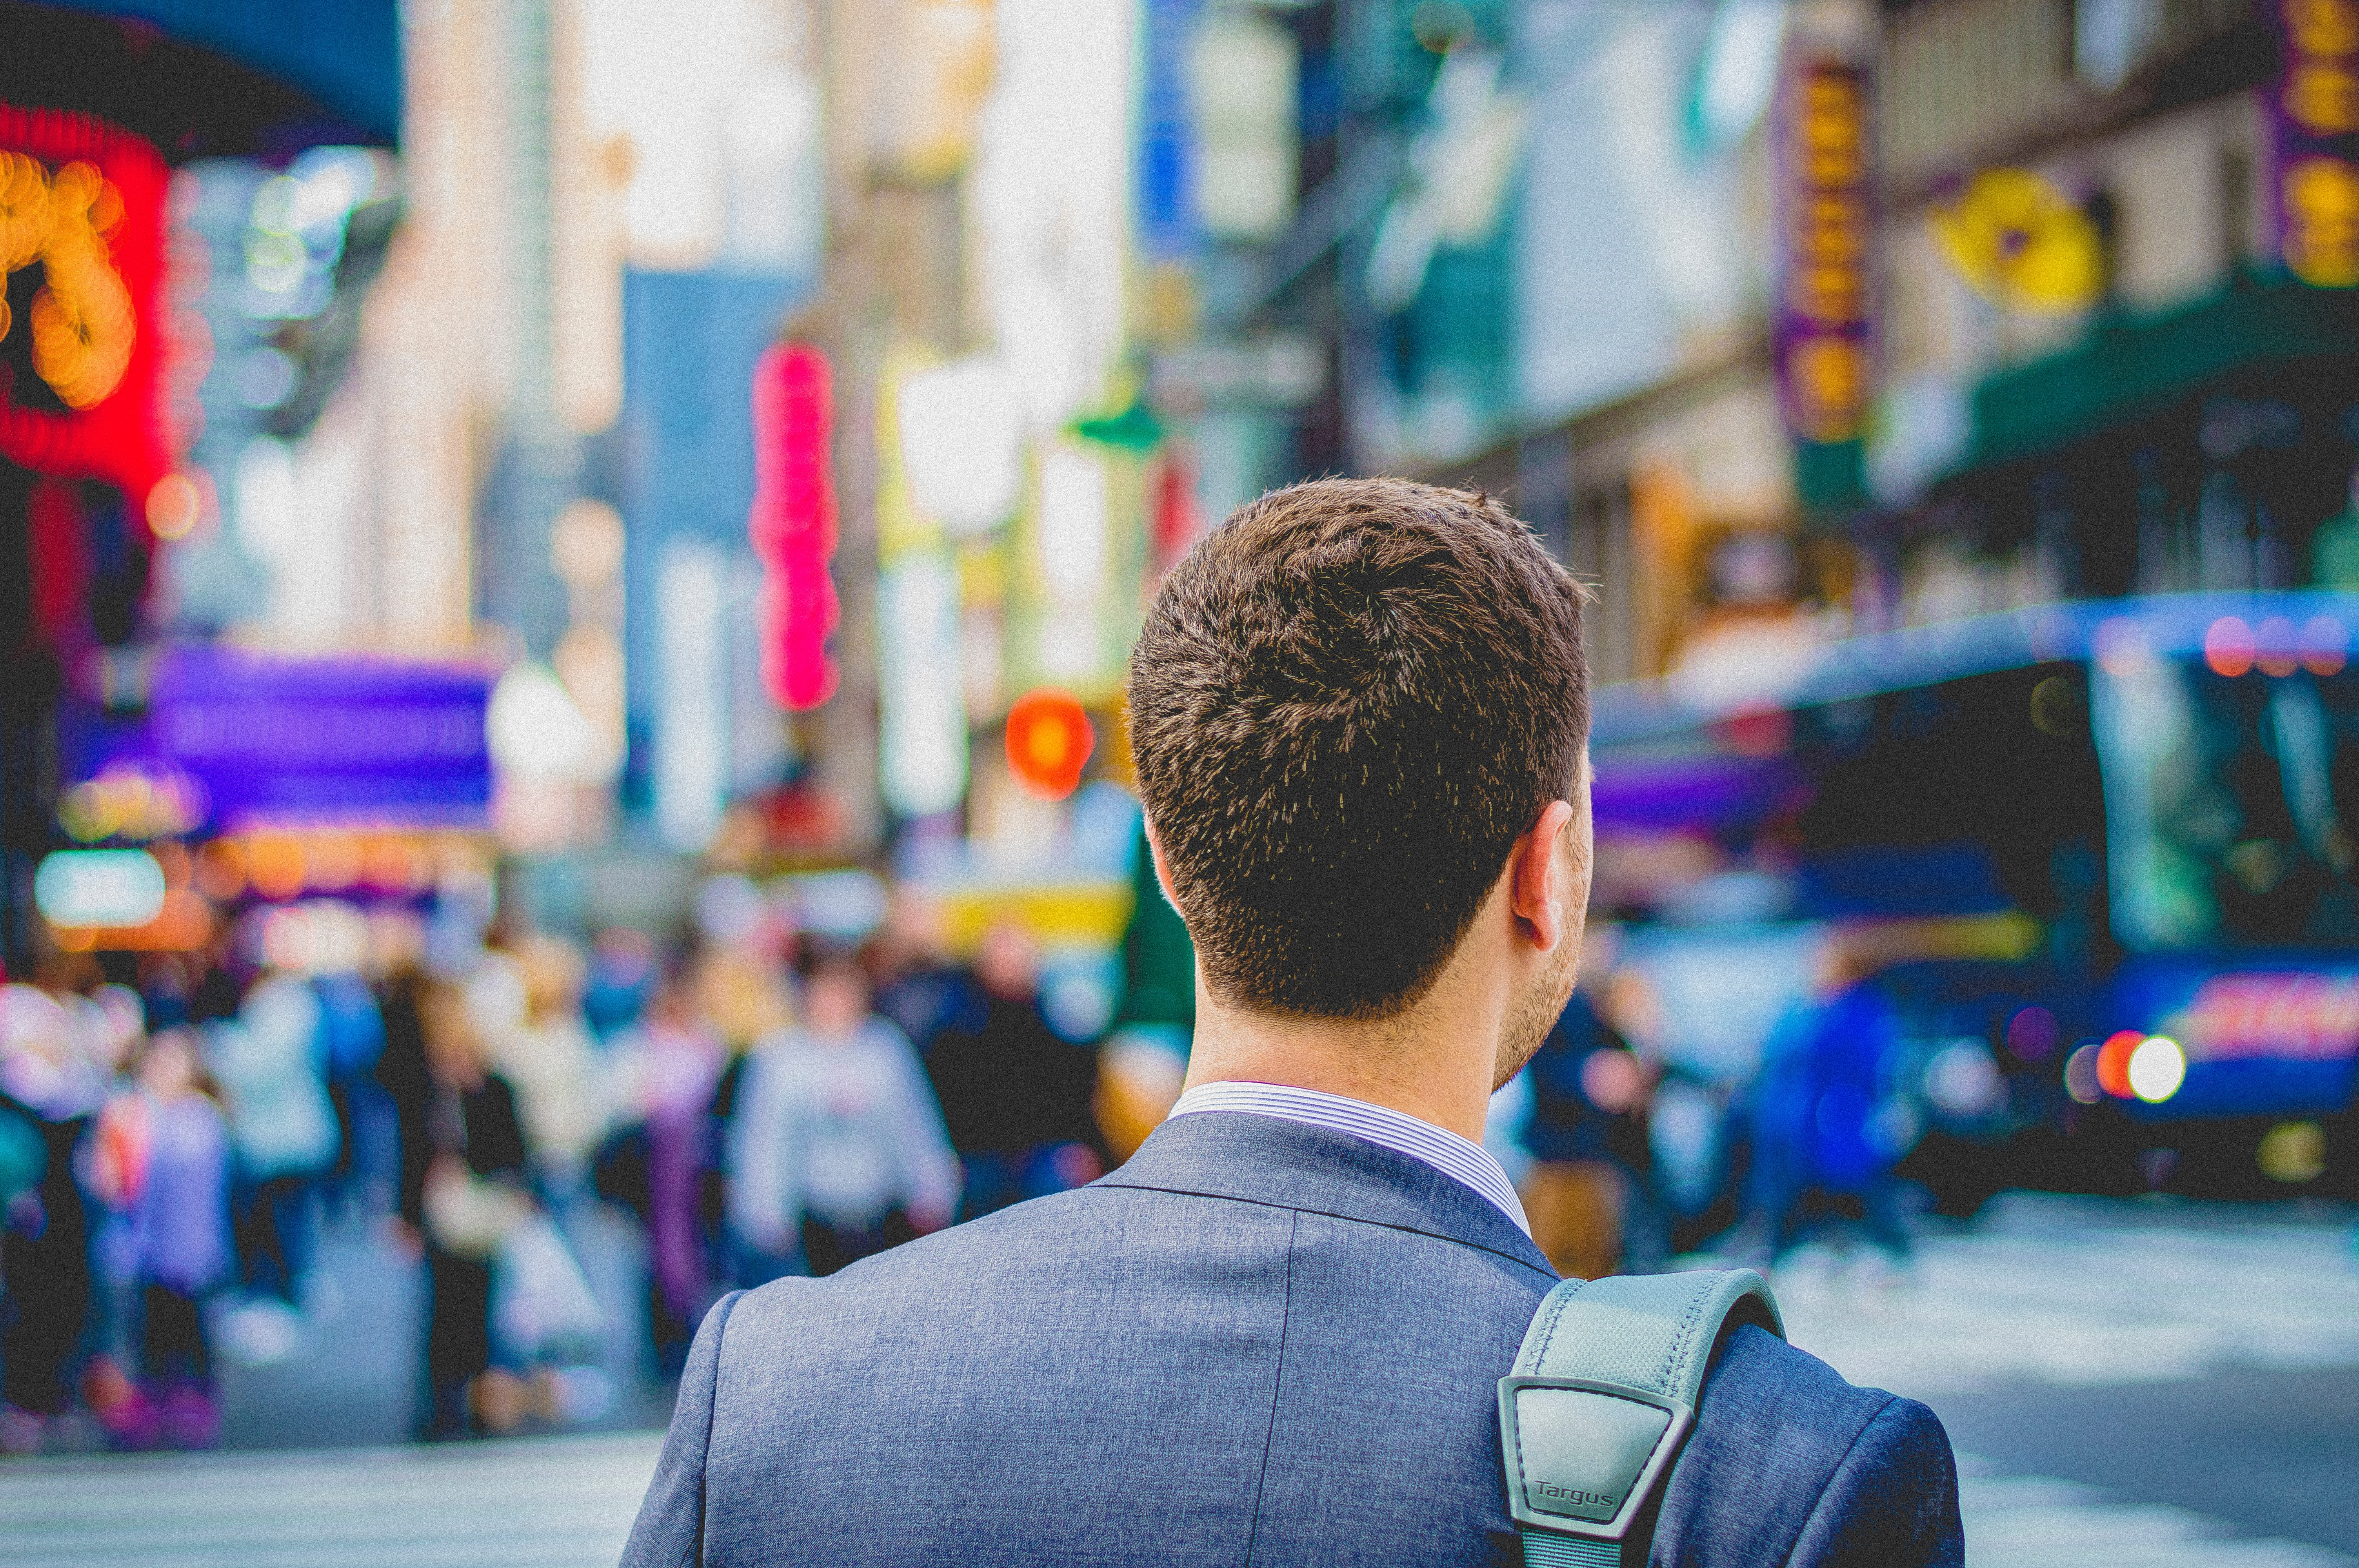 The back of a man in a suit jacket standing in the middle of a bustling city street.